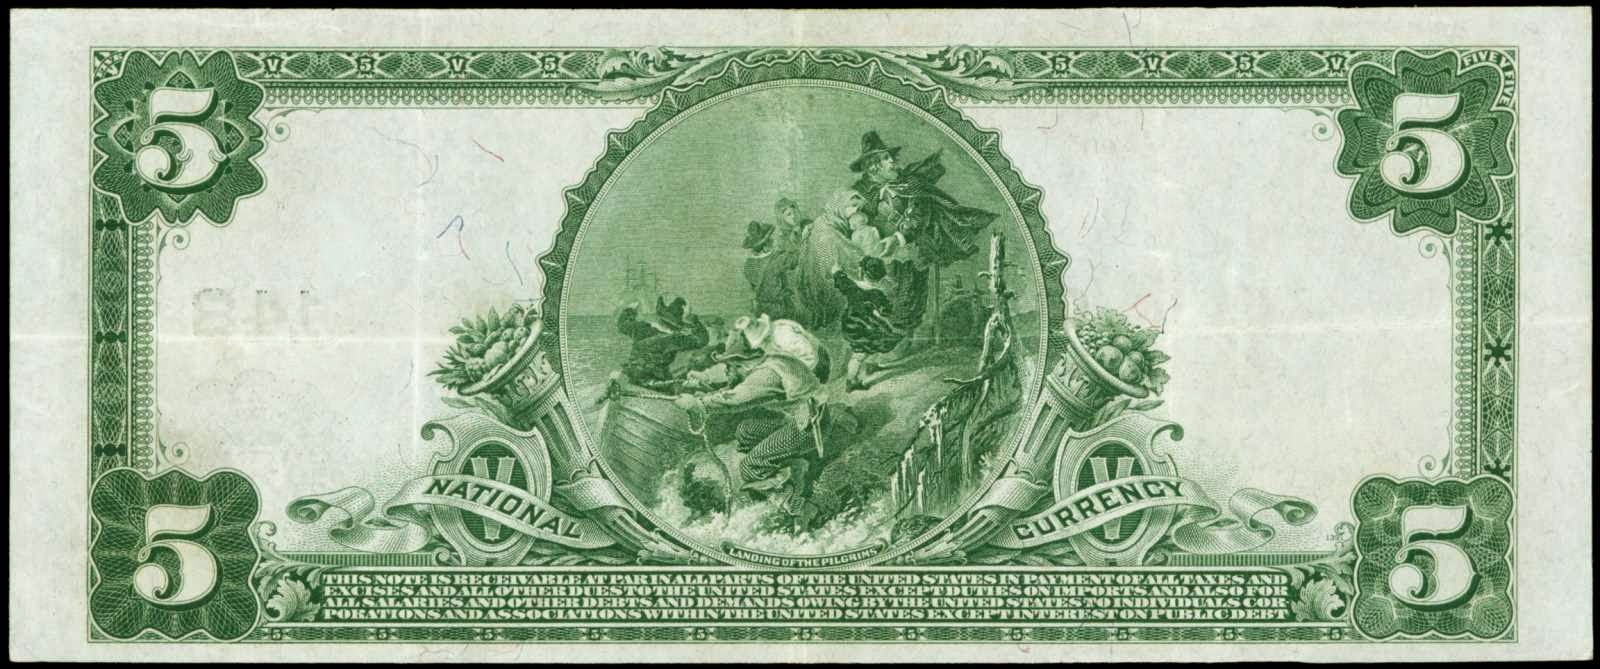 national bank note five dollar bill